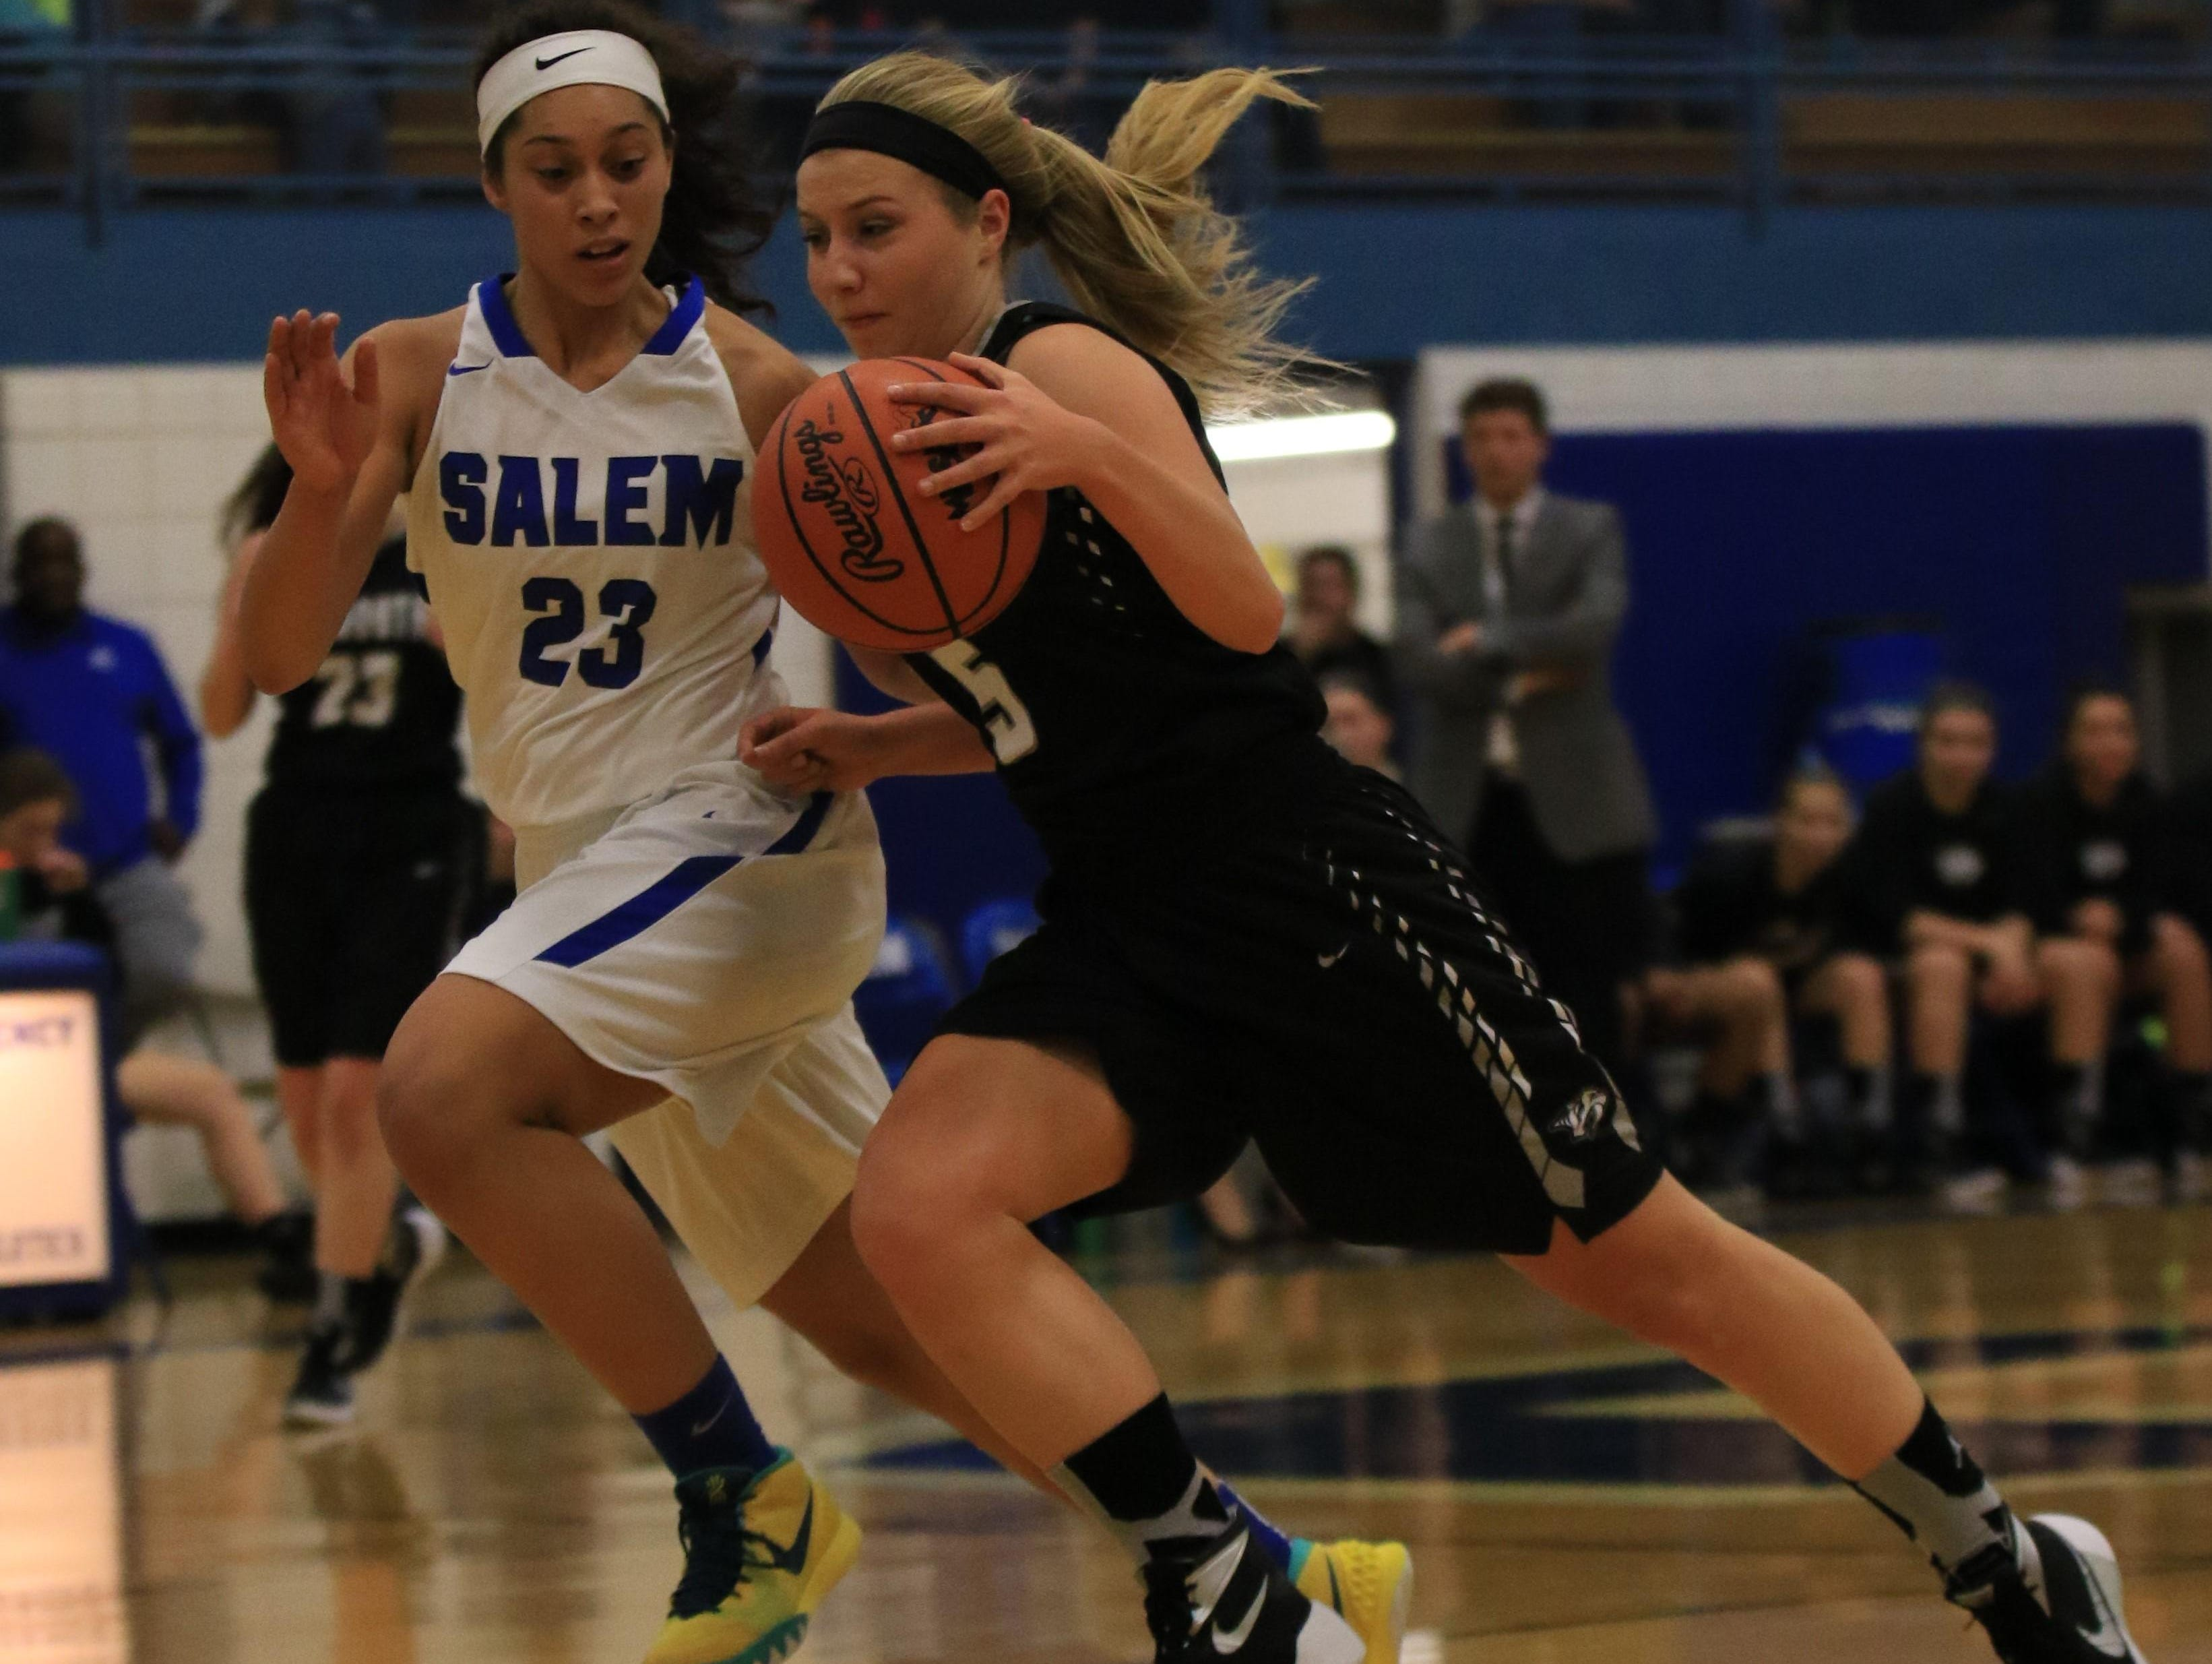 Salem's Jala Petree (No. 23) tries to close in on Plymouth's Hannah Badger (No. 5) during Tuesday's game.